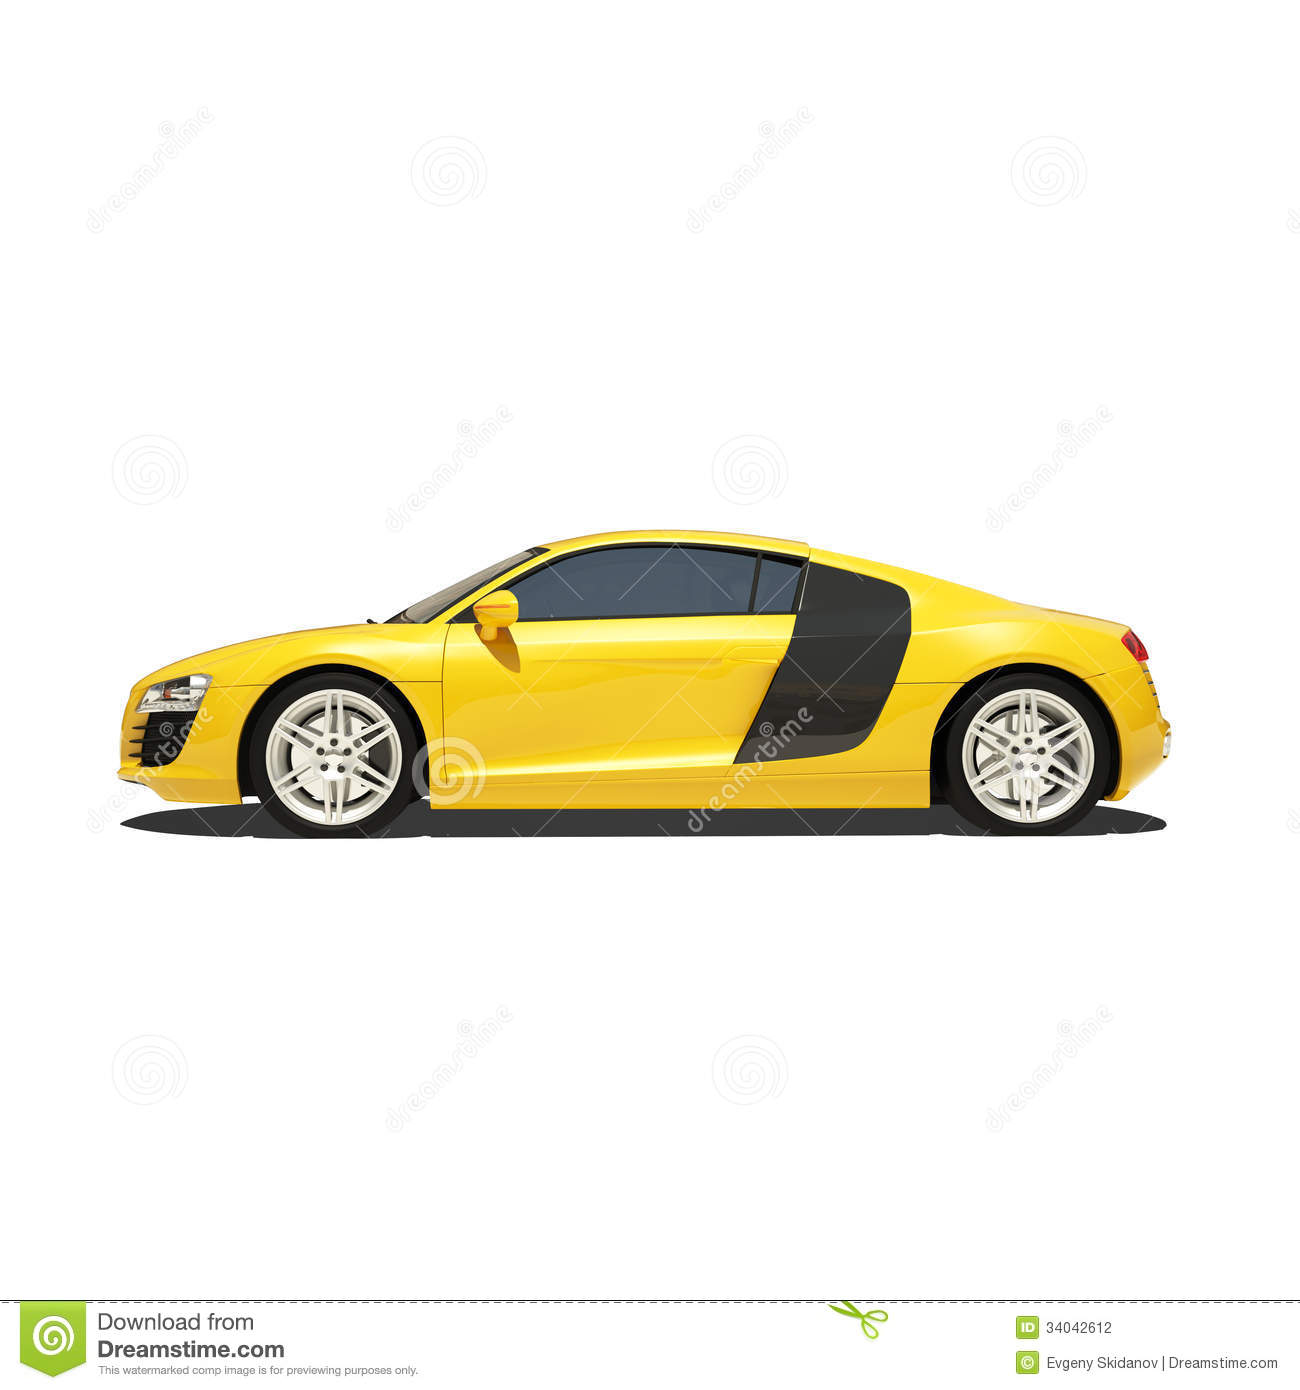 White Tire Paint >> Yellow Super Car Isolated On The White Background Stock Illustration - Image: 34042612